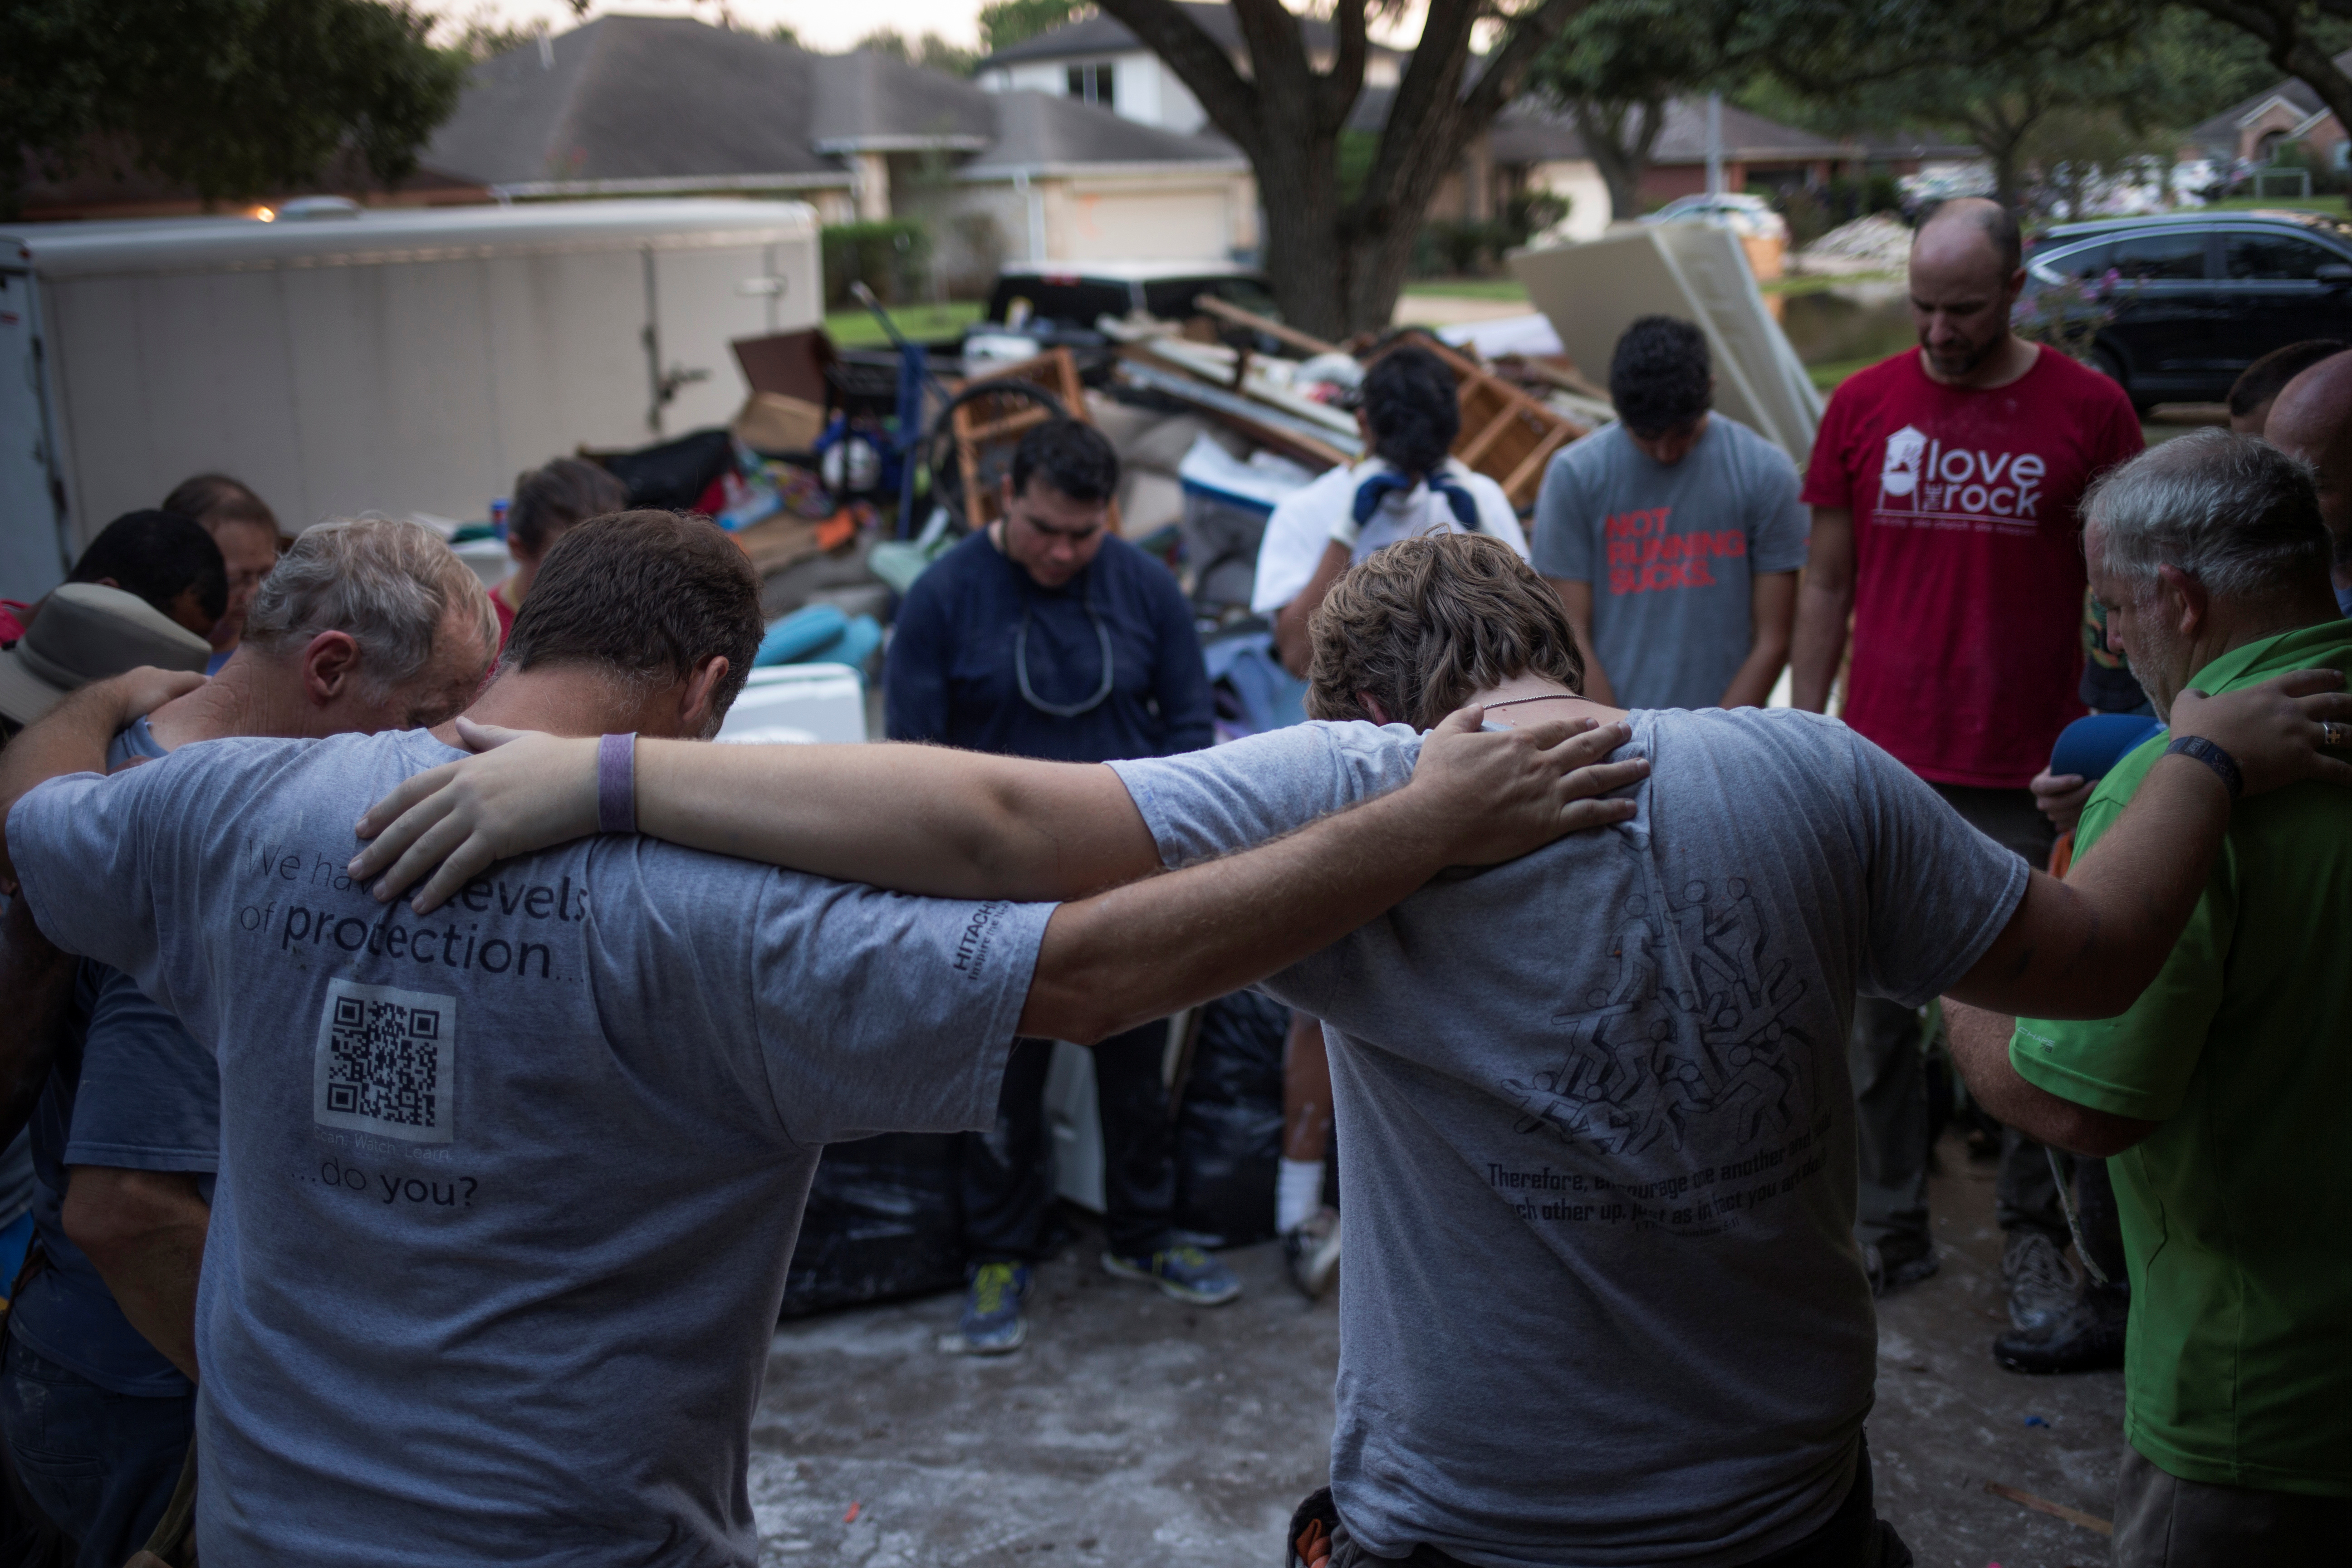 Samaritans  pray after helping clear furniture from the flooded house of a neighbor in the aftermath of Tropical Storm Harvey in Houston, Texas on Sept. 3, 2017. (REUTERS/Adrees Latif)